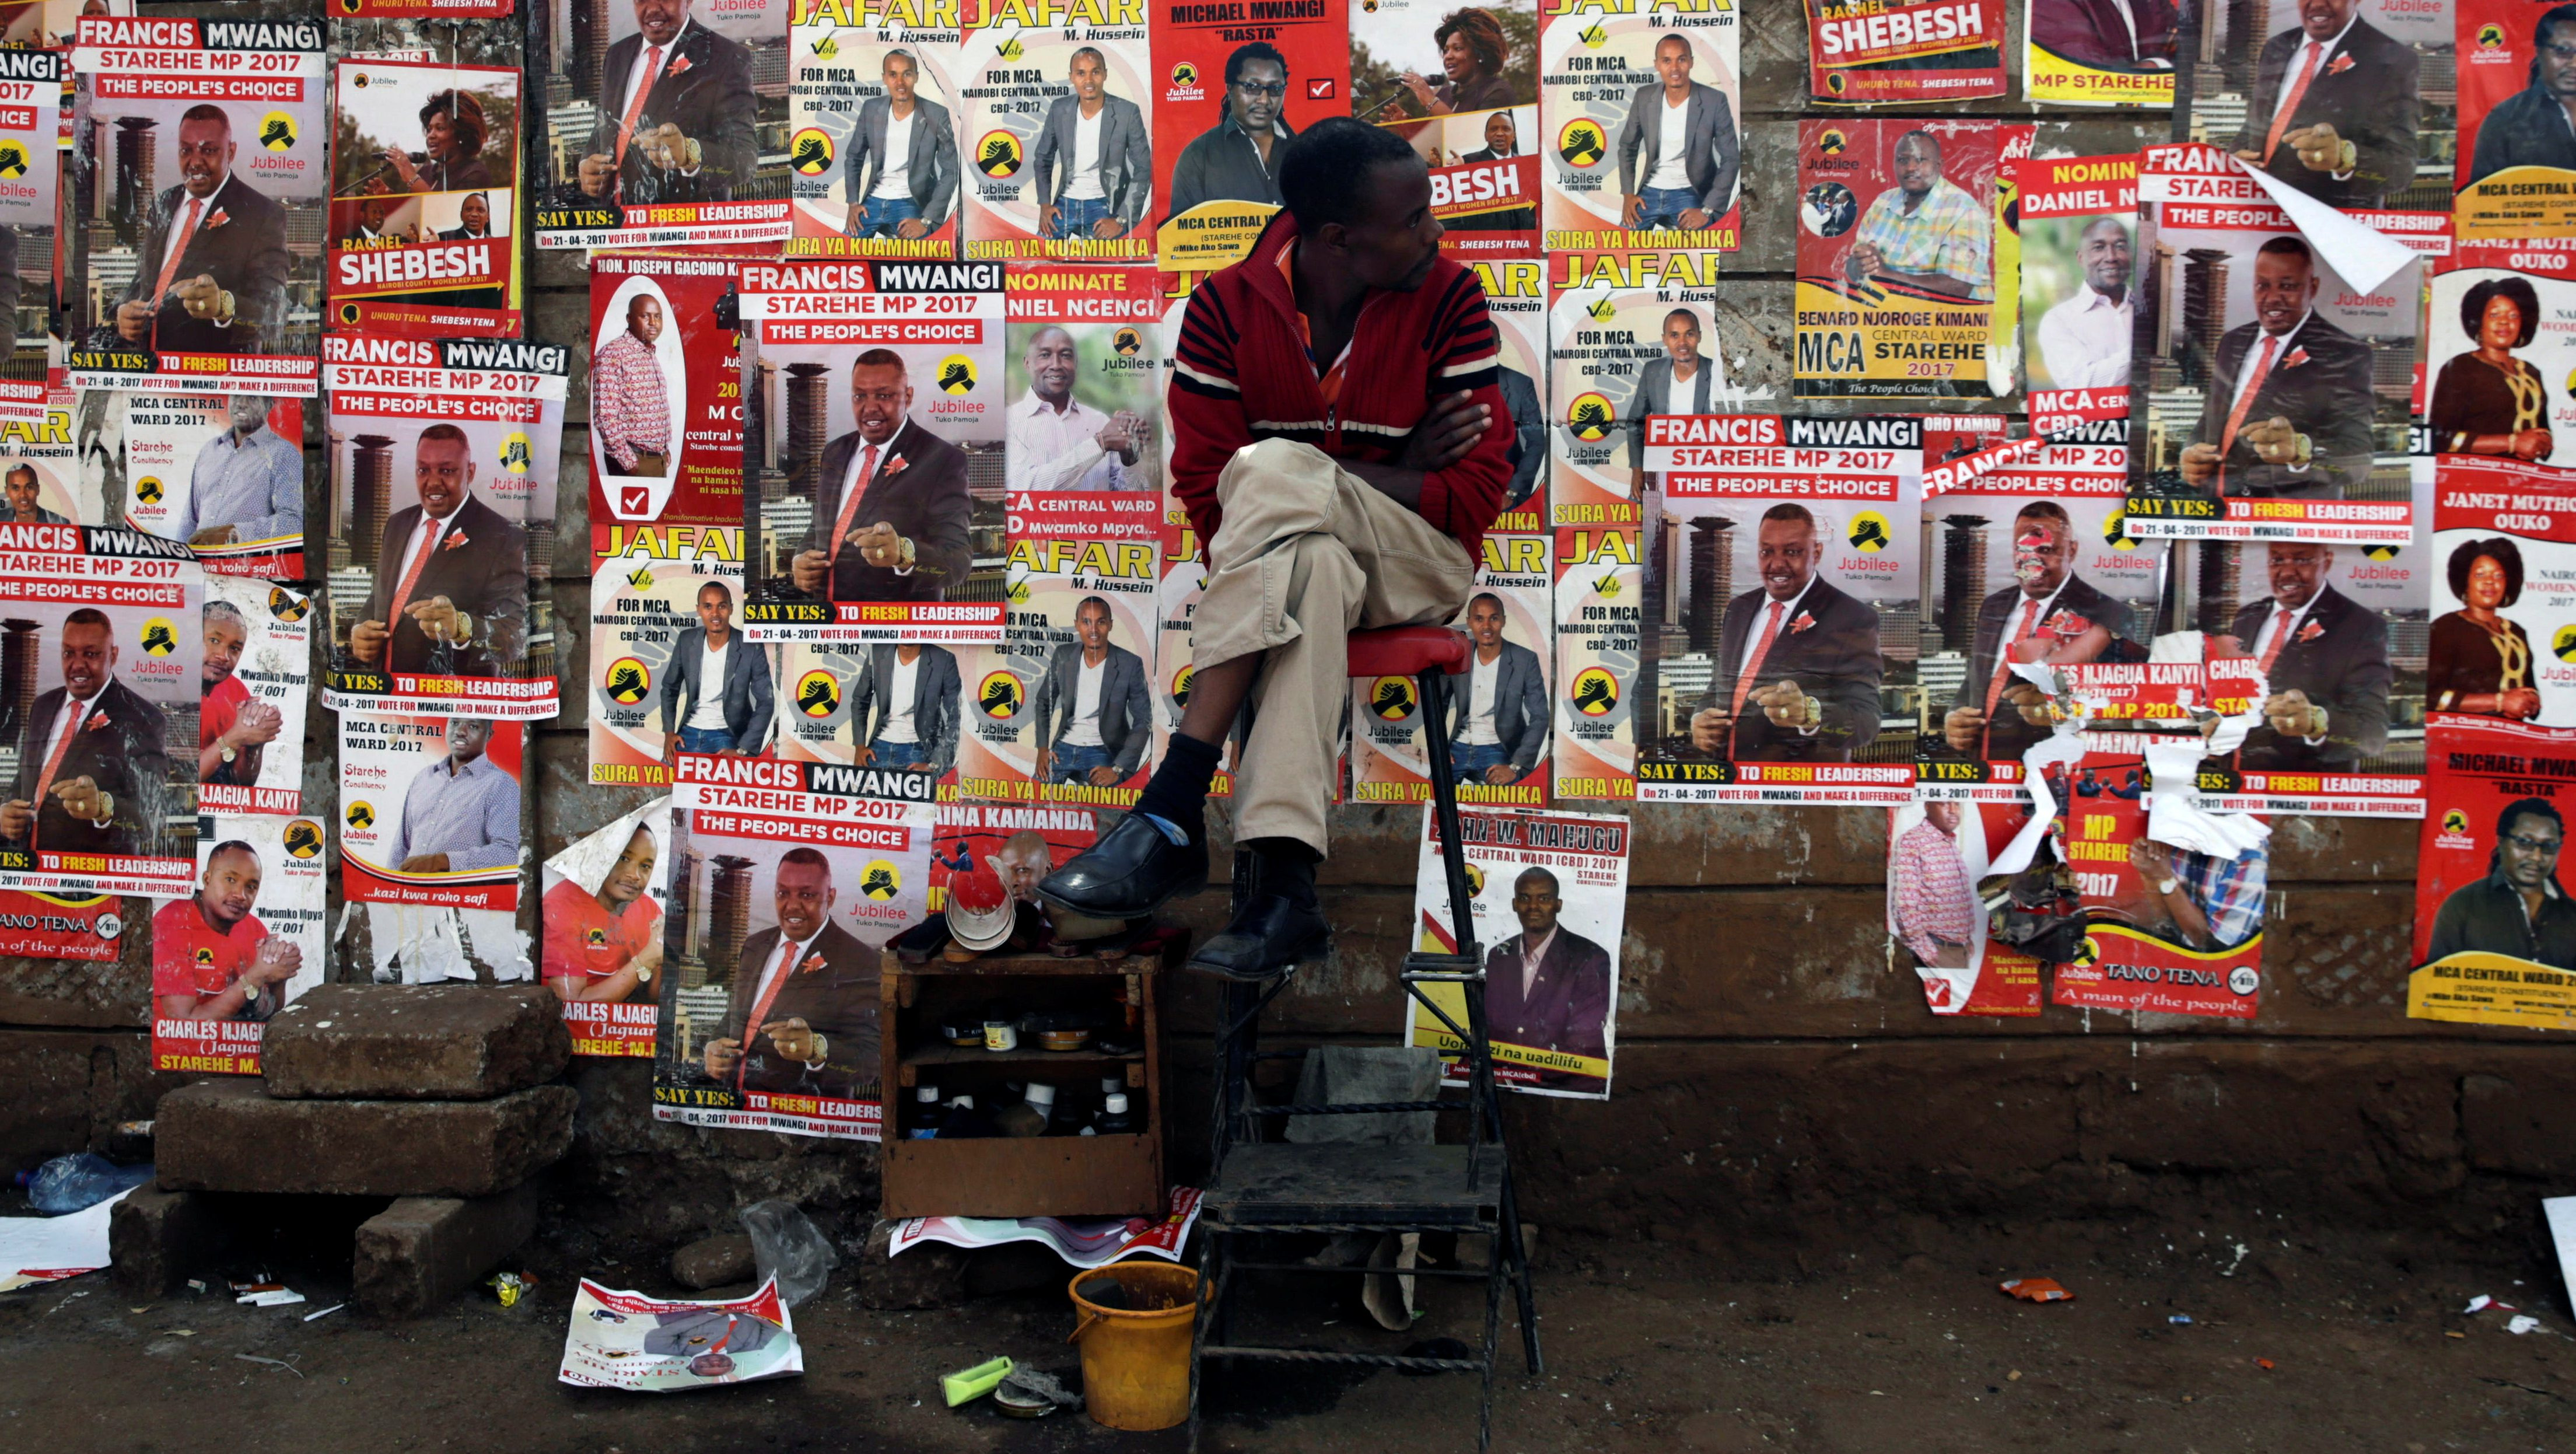 A man looks at campaign posters as he waits to cast his ballot, during the Jubilee Party primary elections, outside a polling centre in Nairobi, Kenya April 26, 2017.